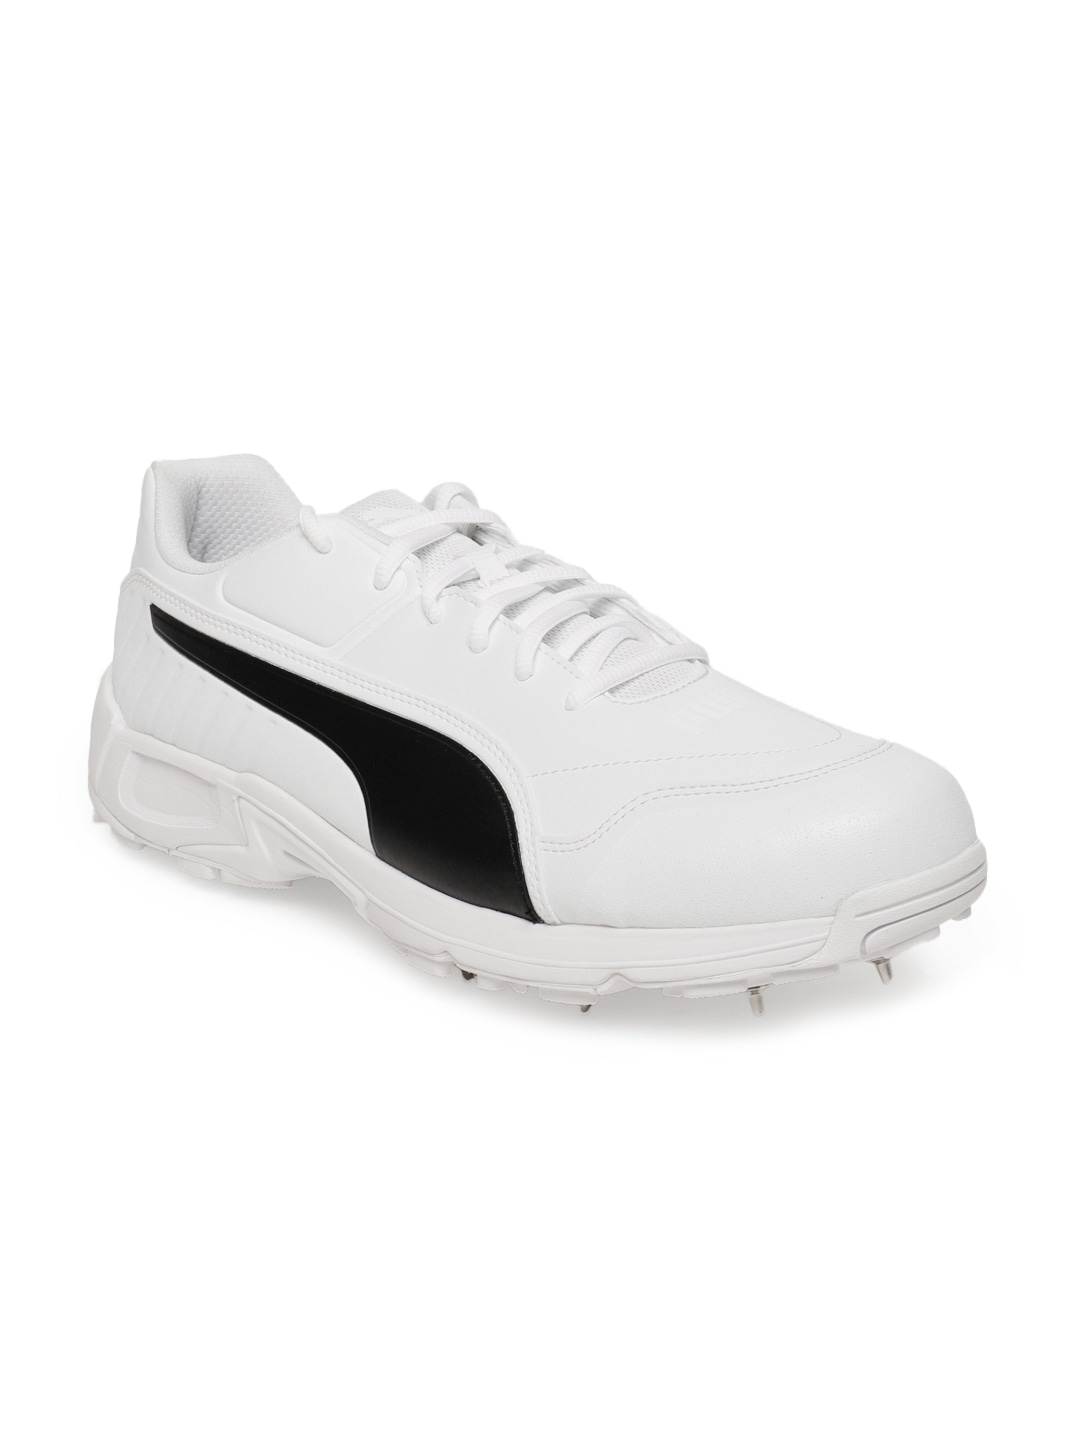 613f4690f00 Puma Men White Evospeed 18.1 vk Cricket Shoes